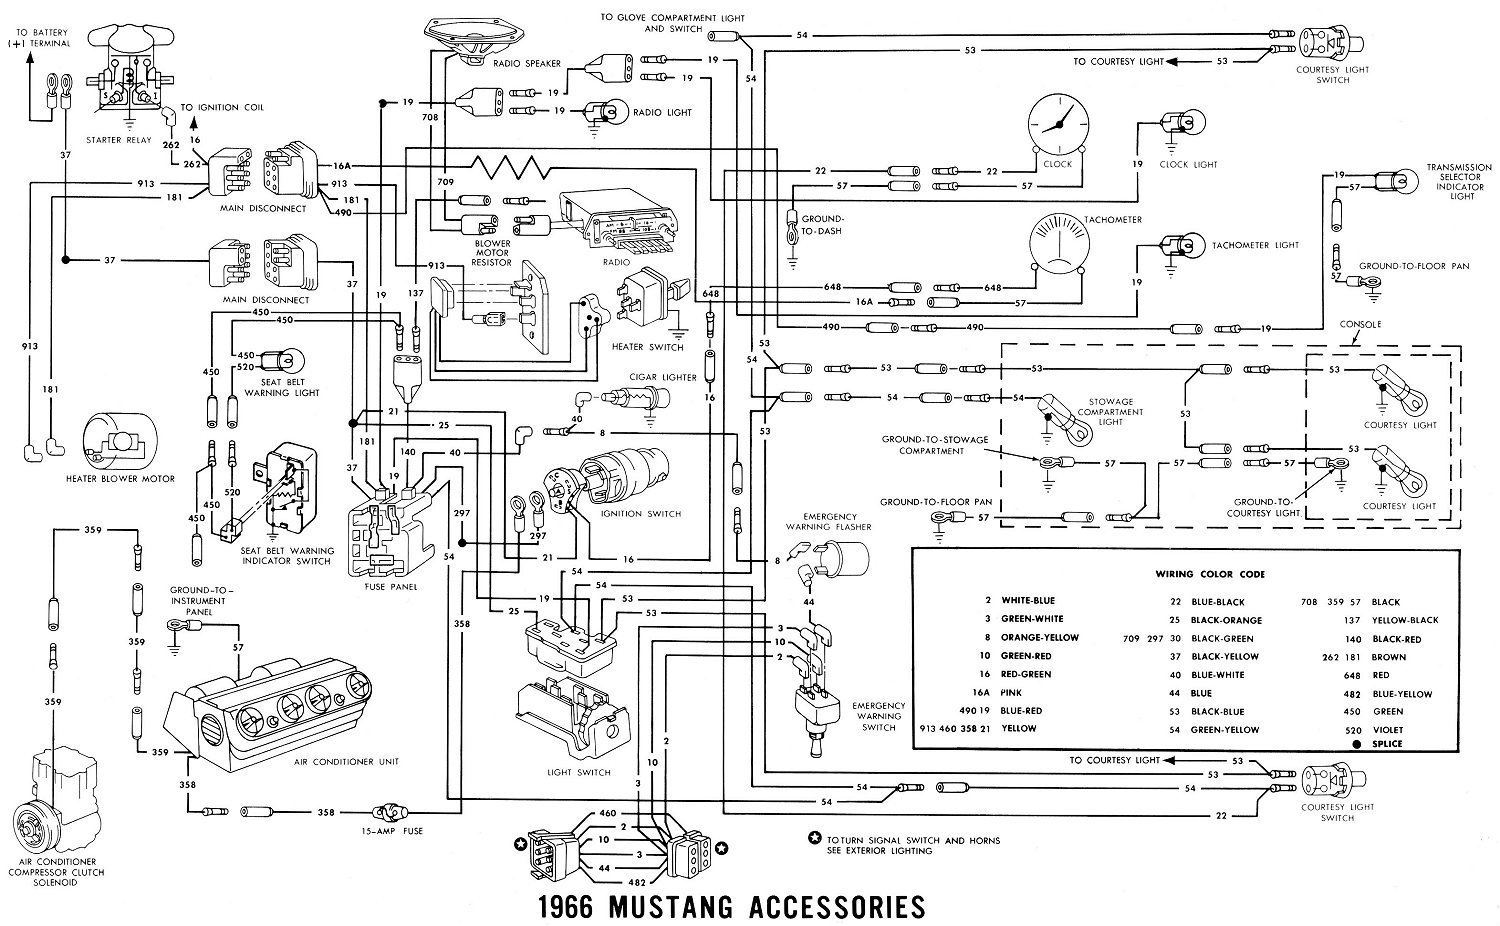 1966 chevelle wiring diagram 1966 image wiring diagram 1966 chevelle dash wiring diagram 1966 auto wiring diagram schematic on 1966 chevelle wiring diagram